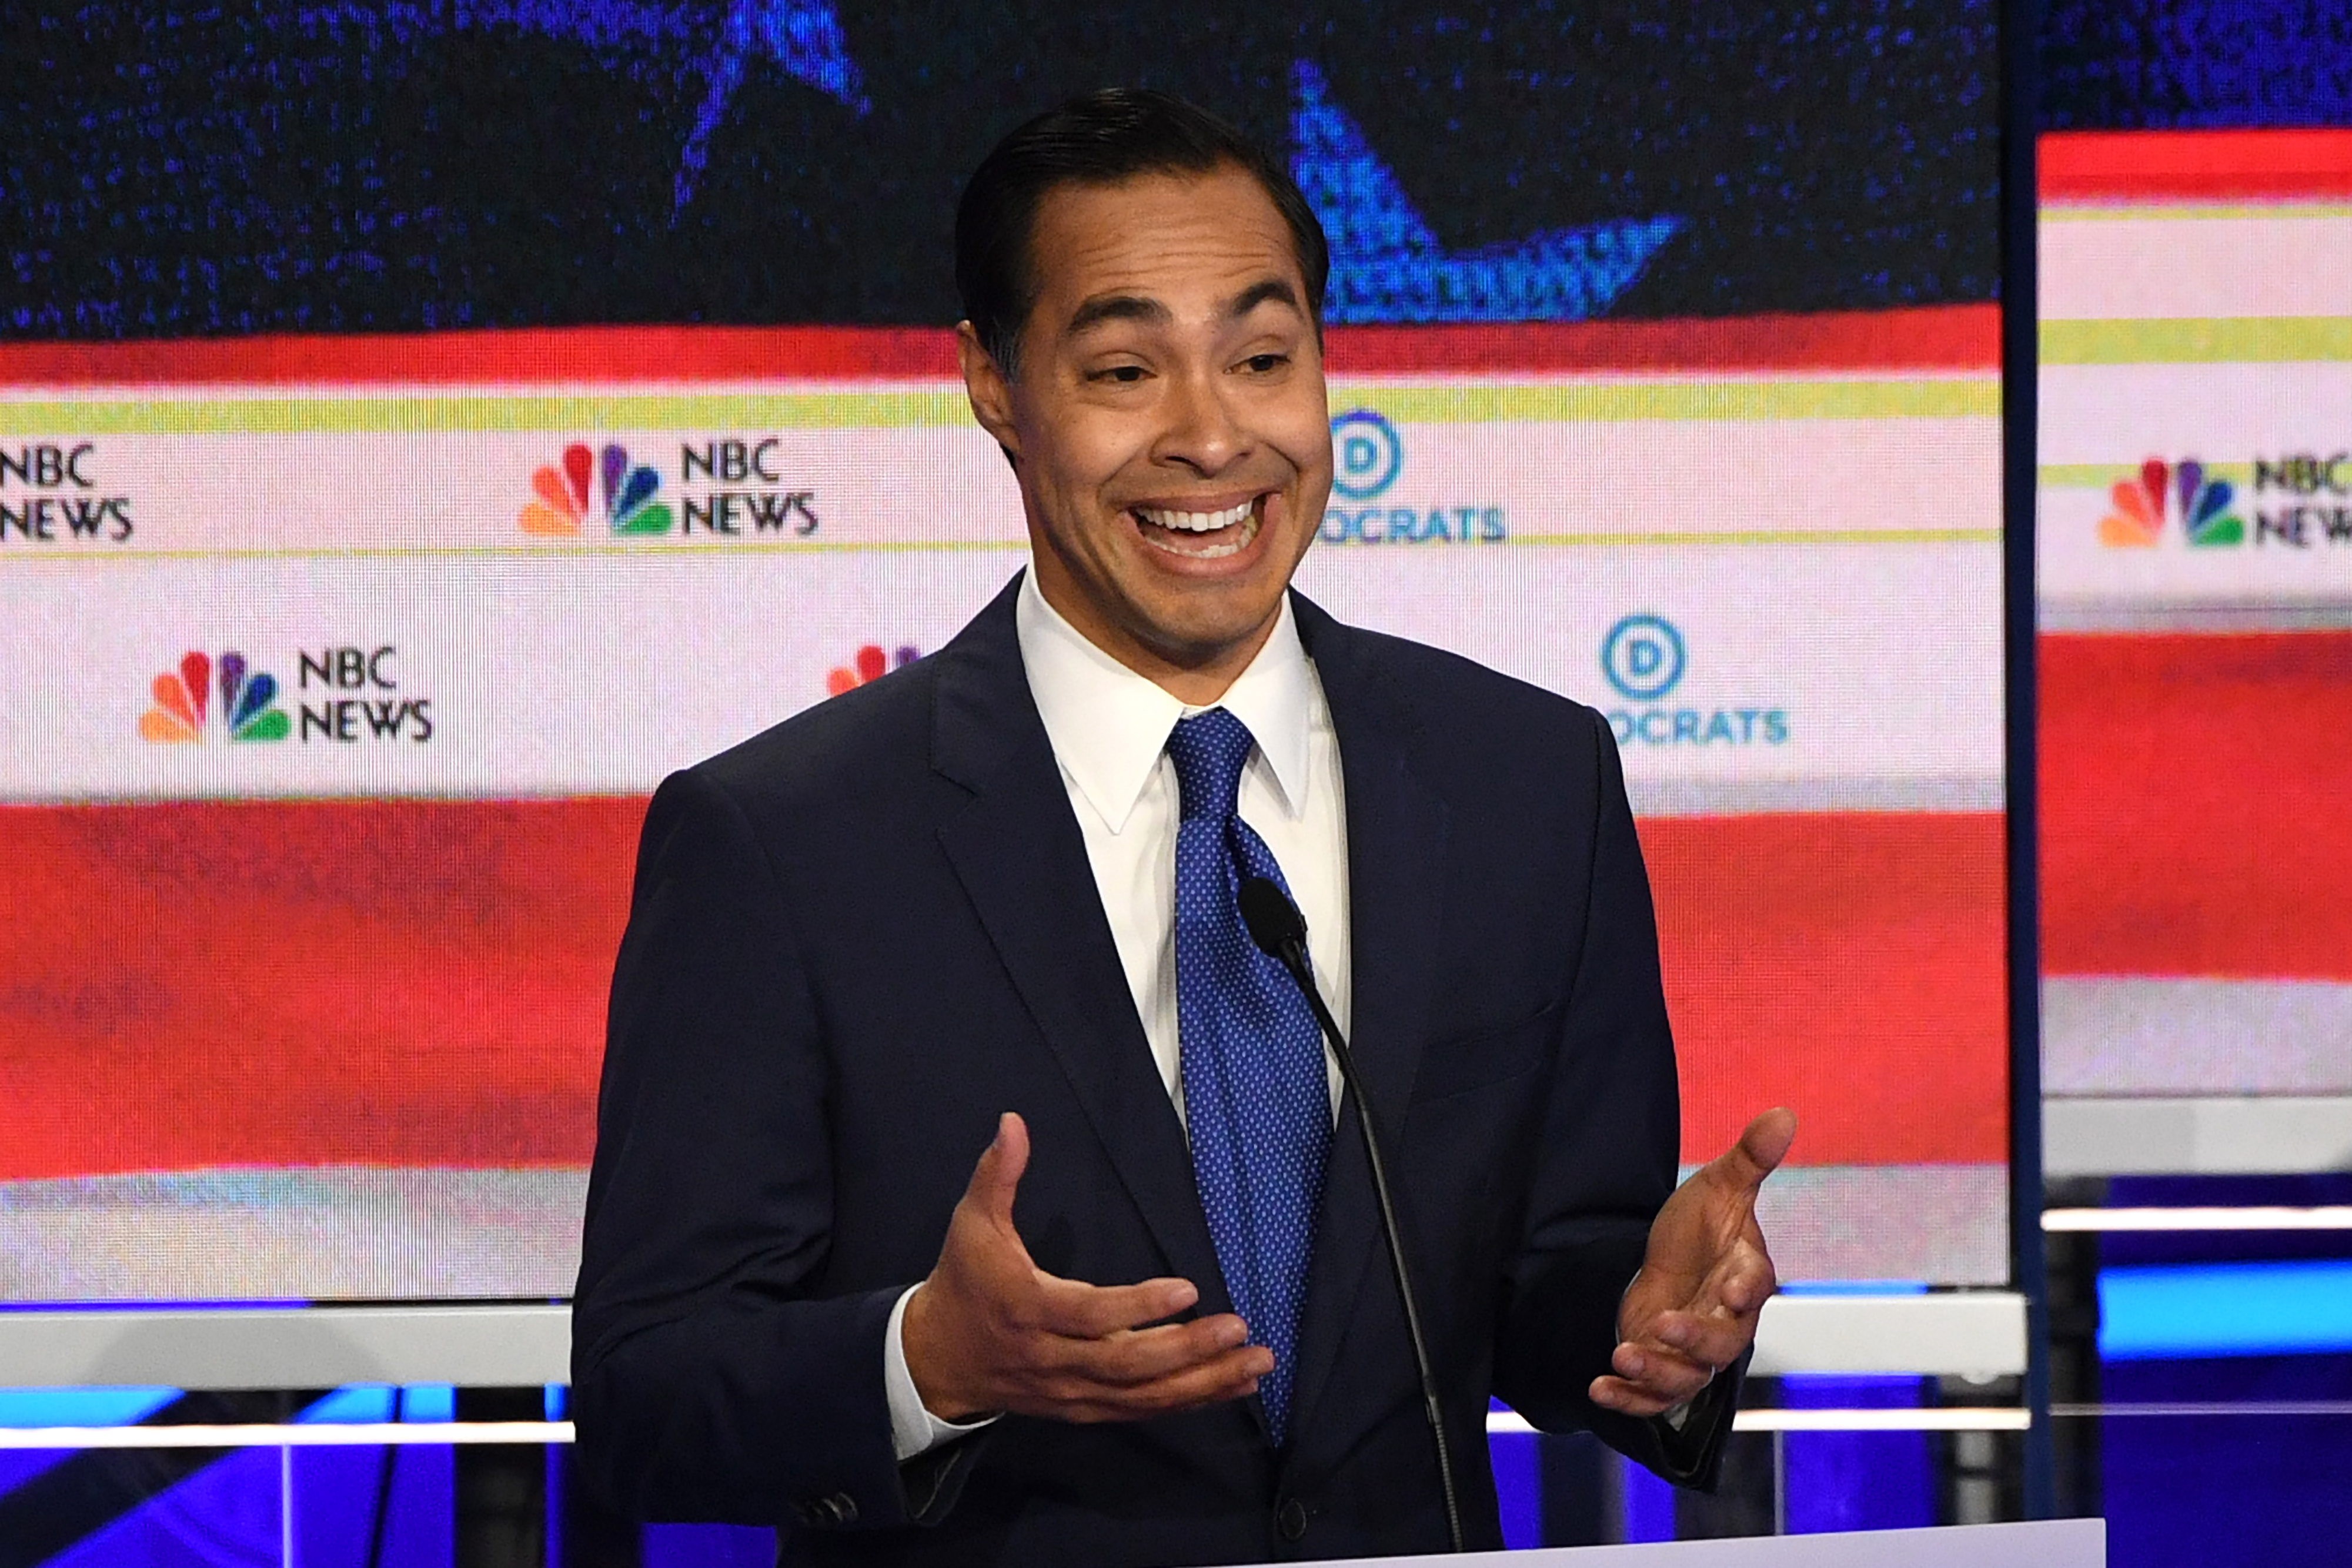 Democratic presidential hopeful former U.S. Secretary of Housing and Urban Development Julian Castro participates in the first Democratic primary debate of the 2020 presidential campaign at the Adrienne Arsht Center for the Performing Arts in Miami,  June 26, 2019.